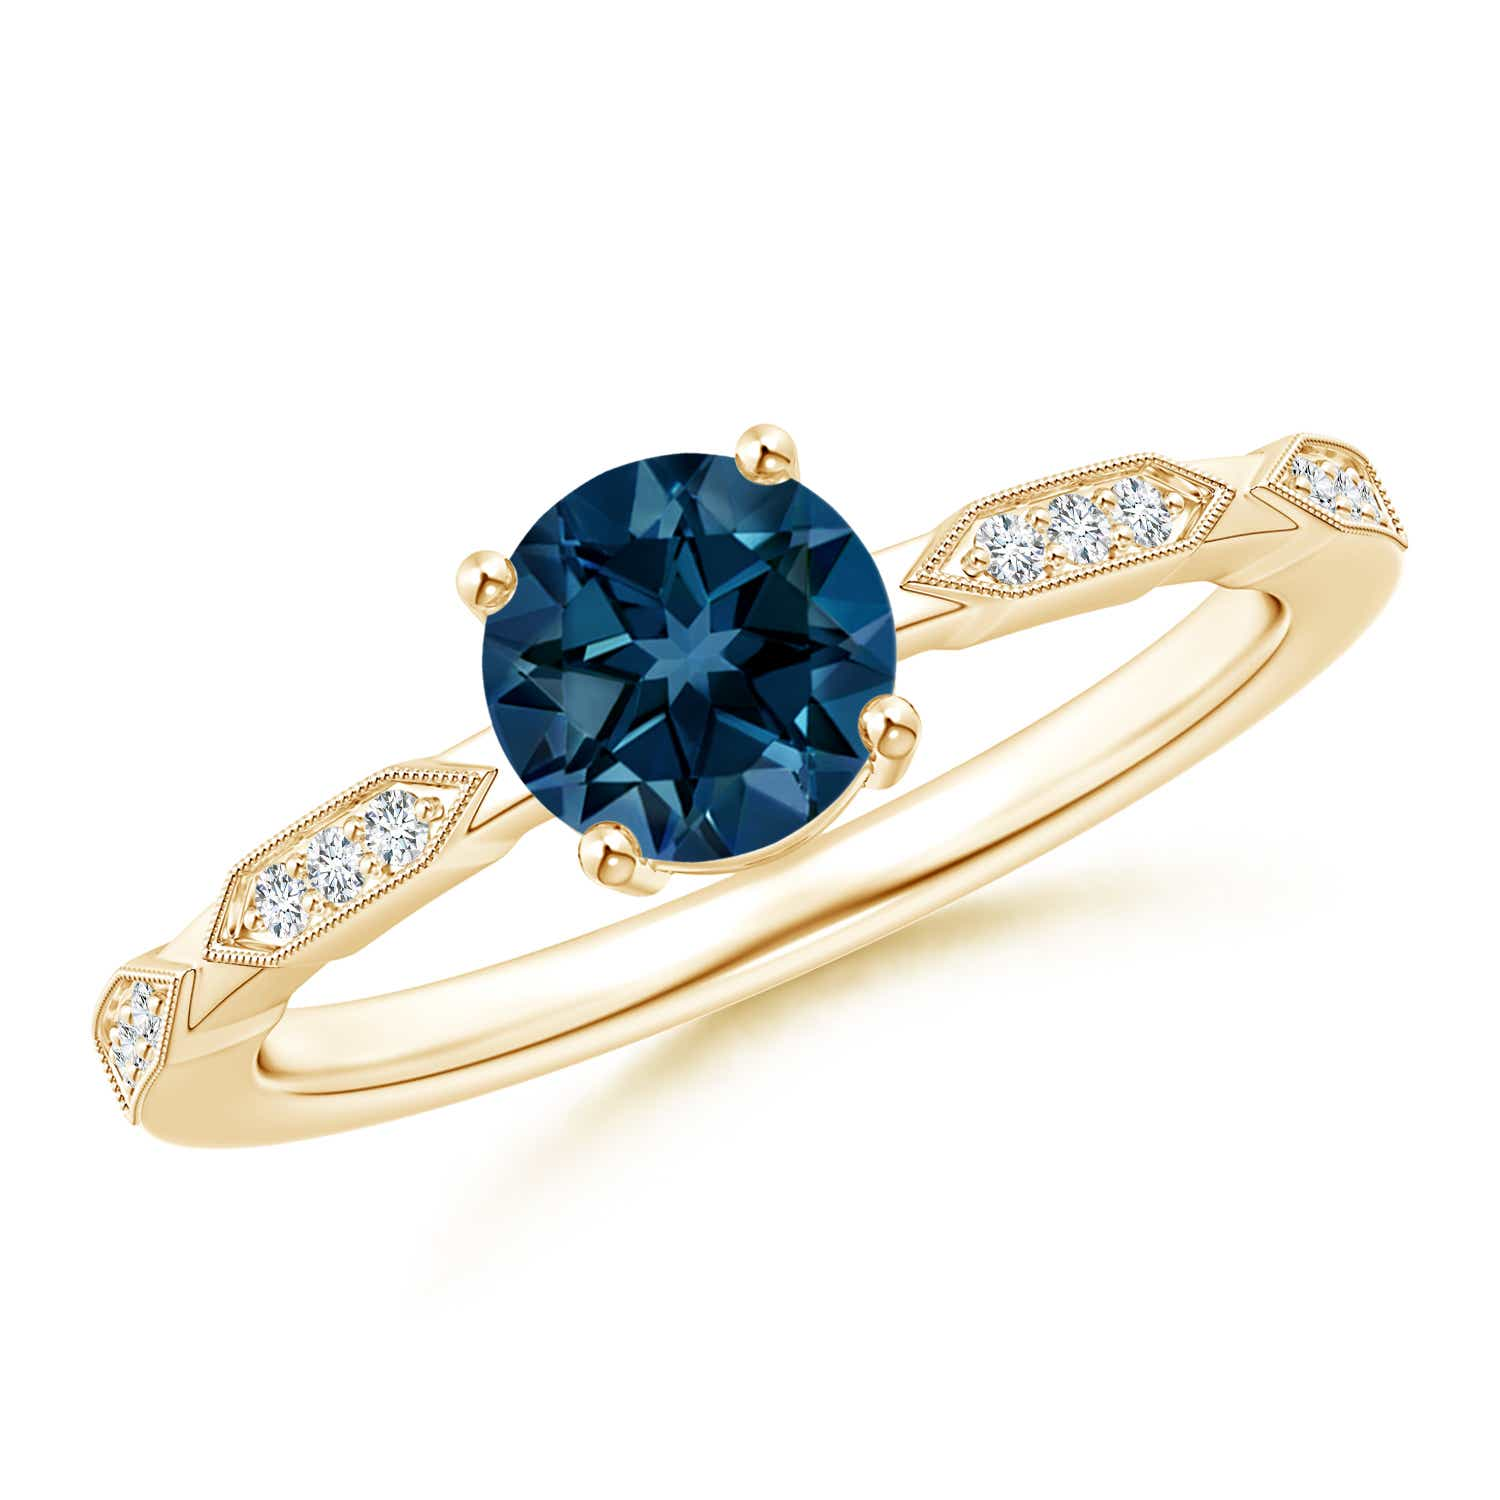 Angara Natural London Blue Topaz Solitaire Ring in Yellow Gold Vjx9FH0